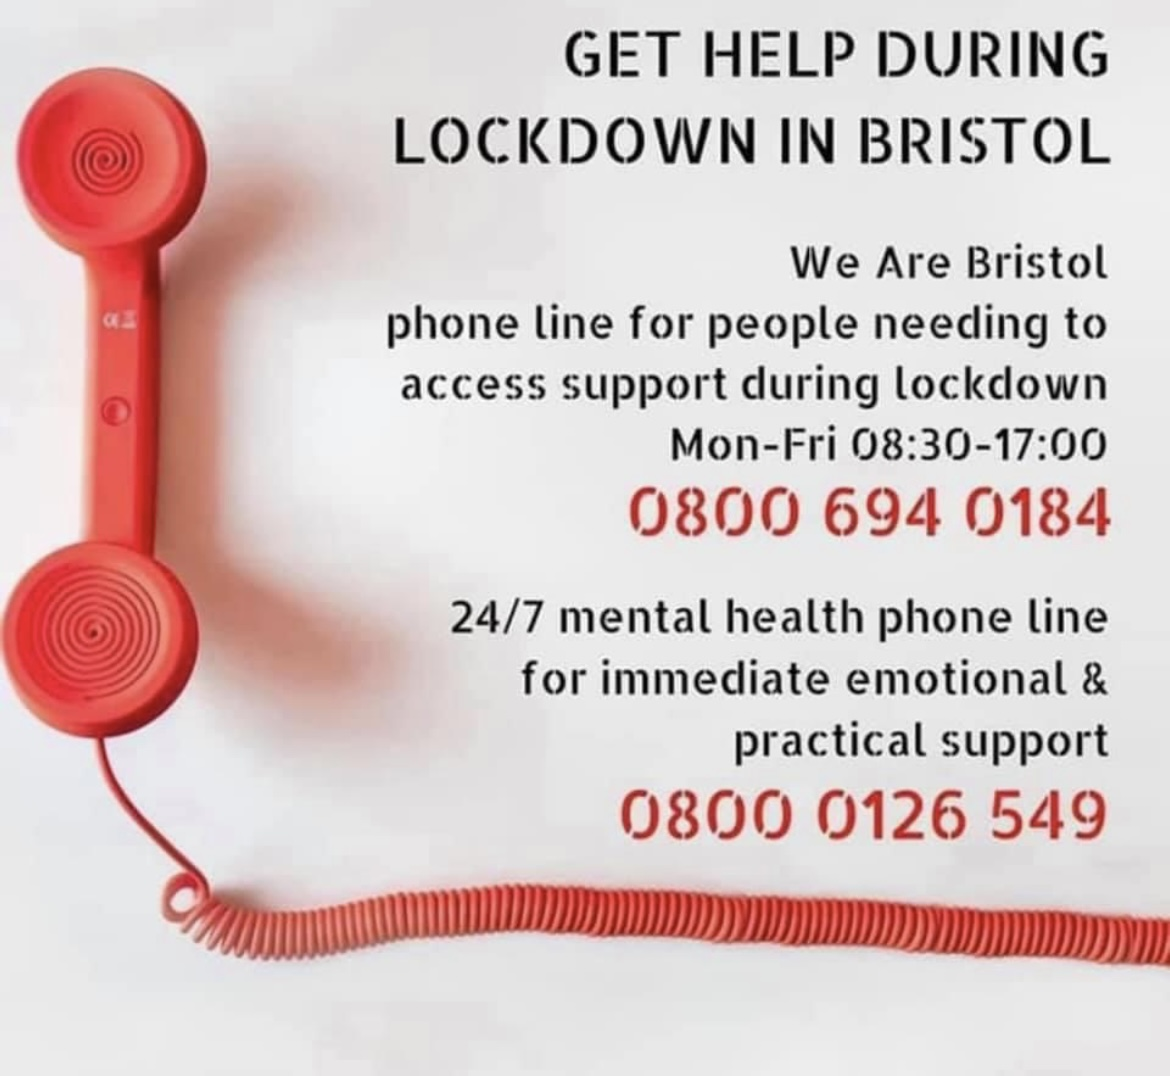 Get Help during lockdown in Bristol